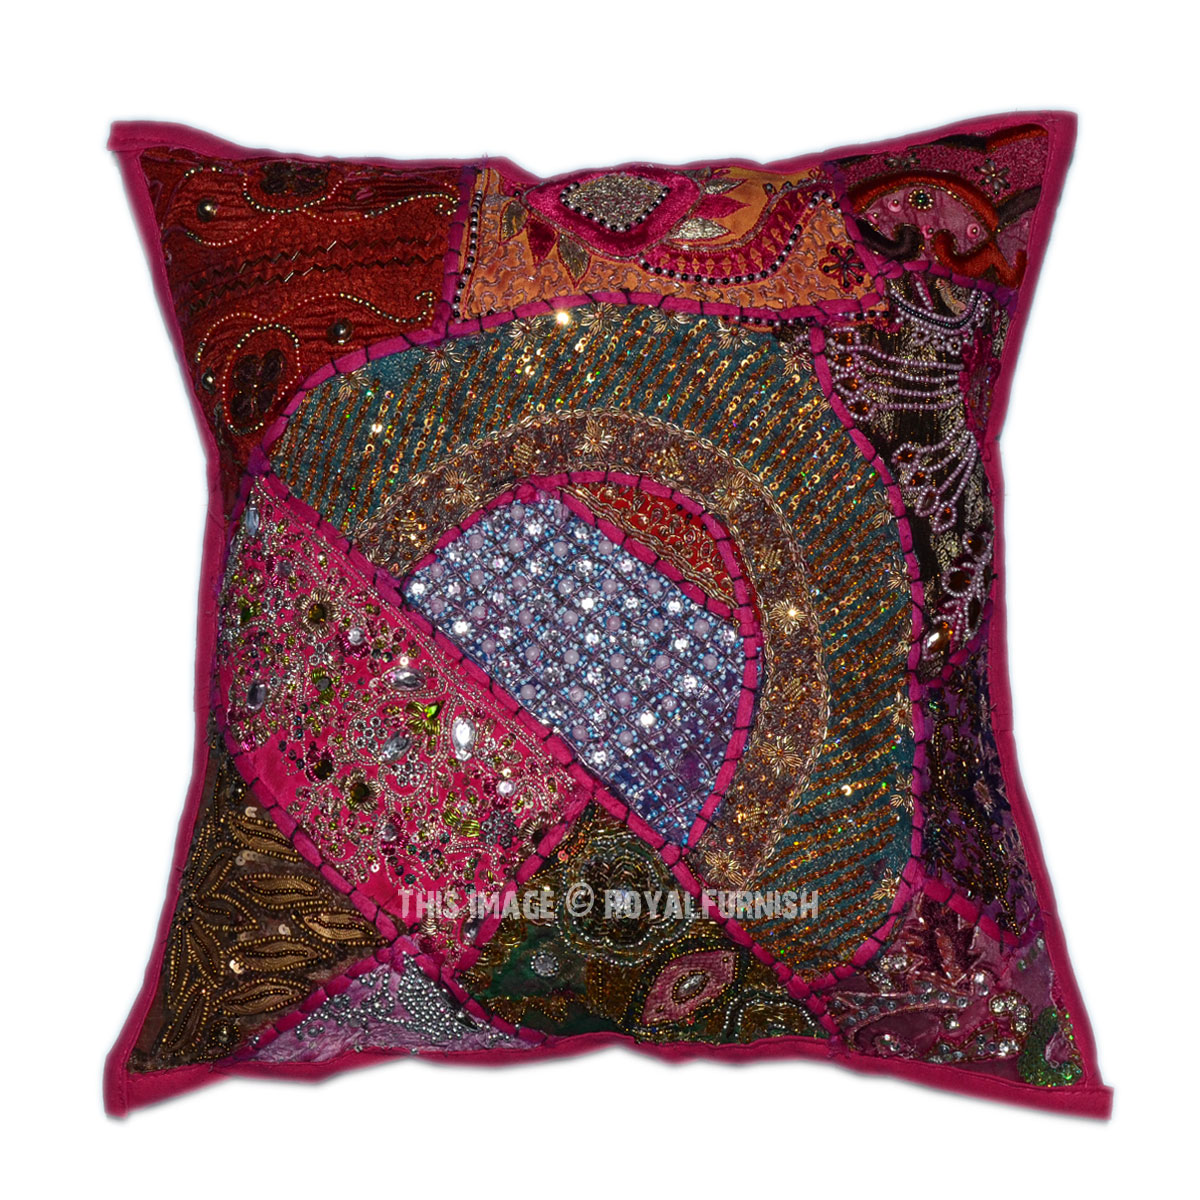 Pink Sequin Decorative Pillows : 16